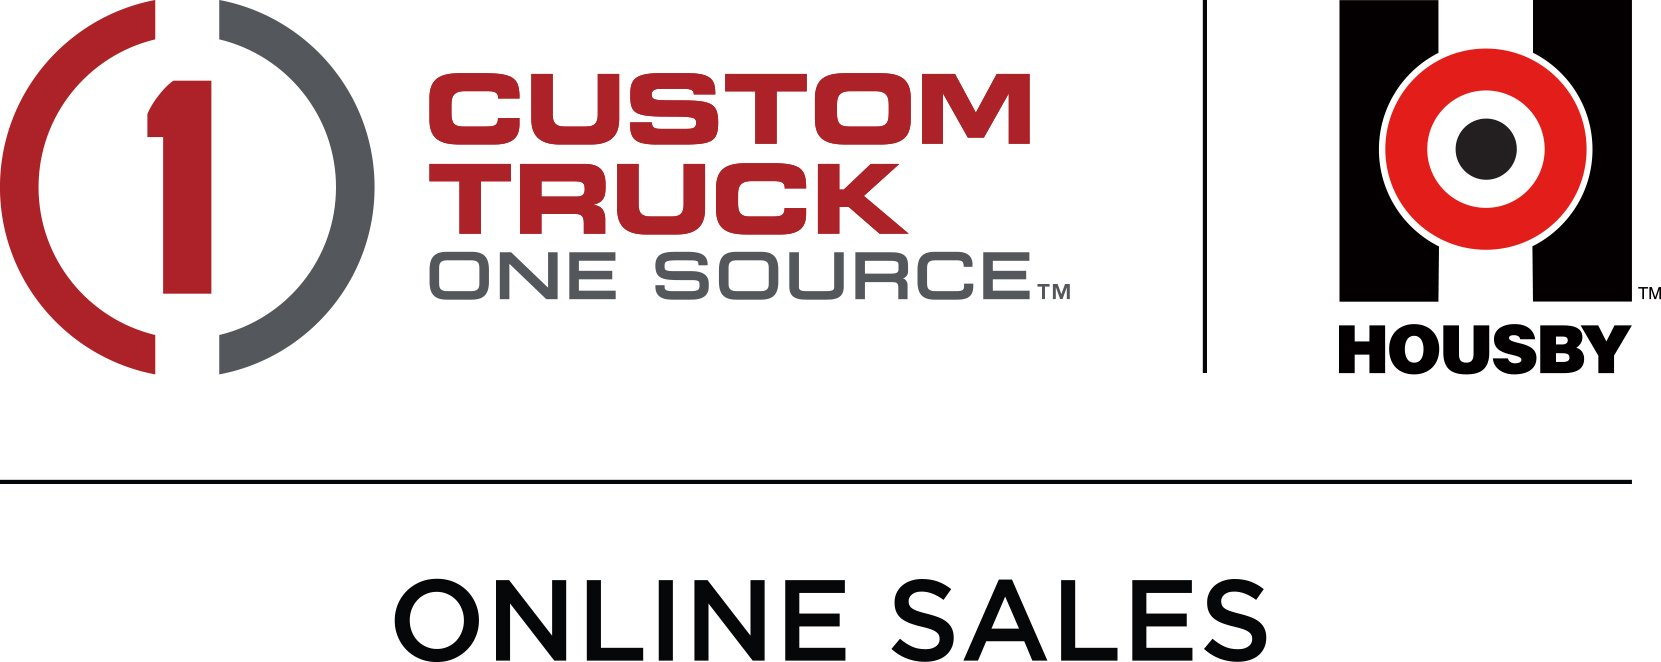 Custom Truck One Source Housby Online Sales Profile in